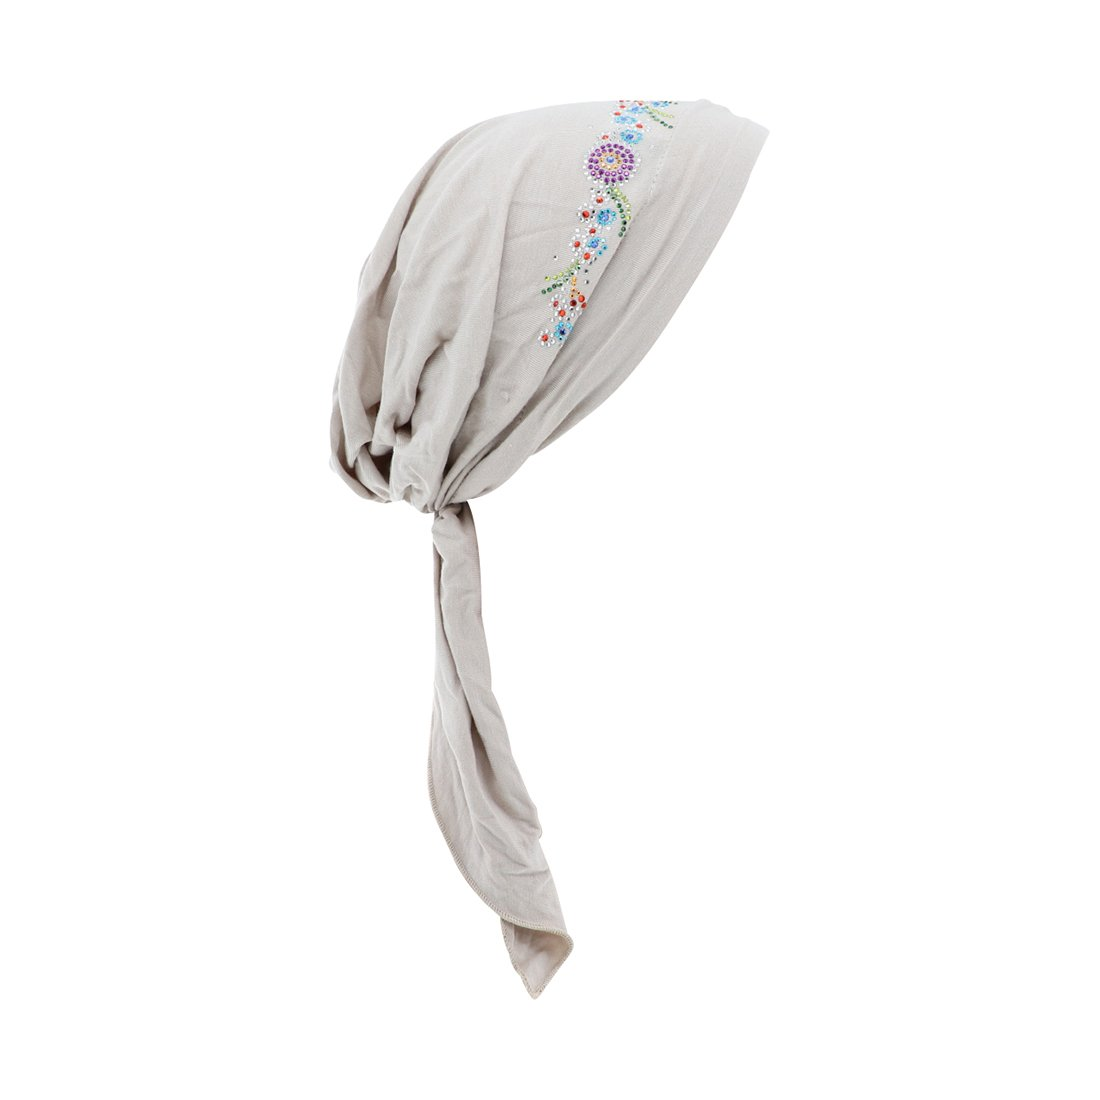 Beige Pretied Headscarf Chemo Cap Modesty with Rhinestone Floral Band